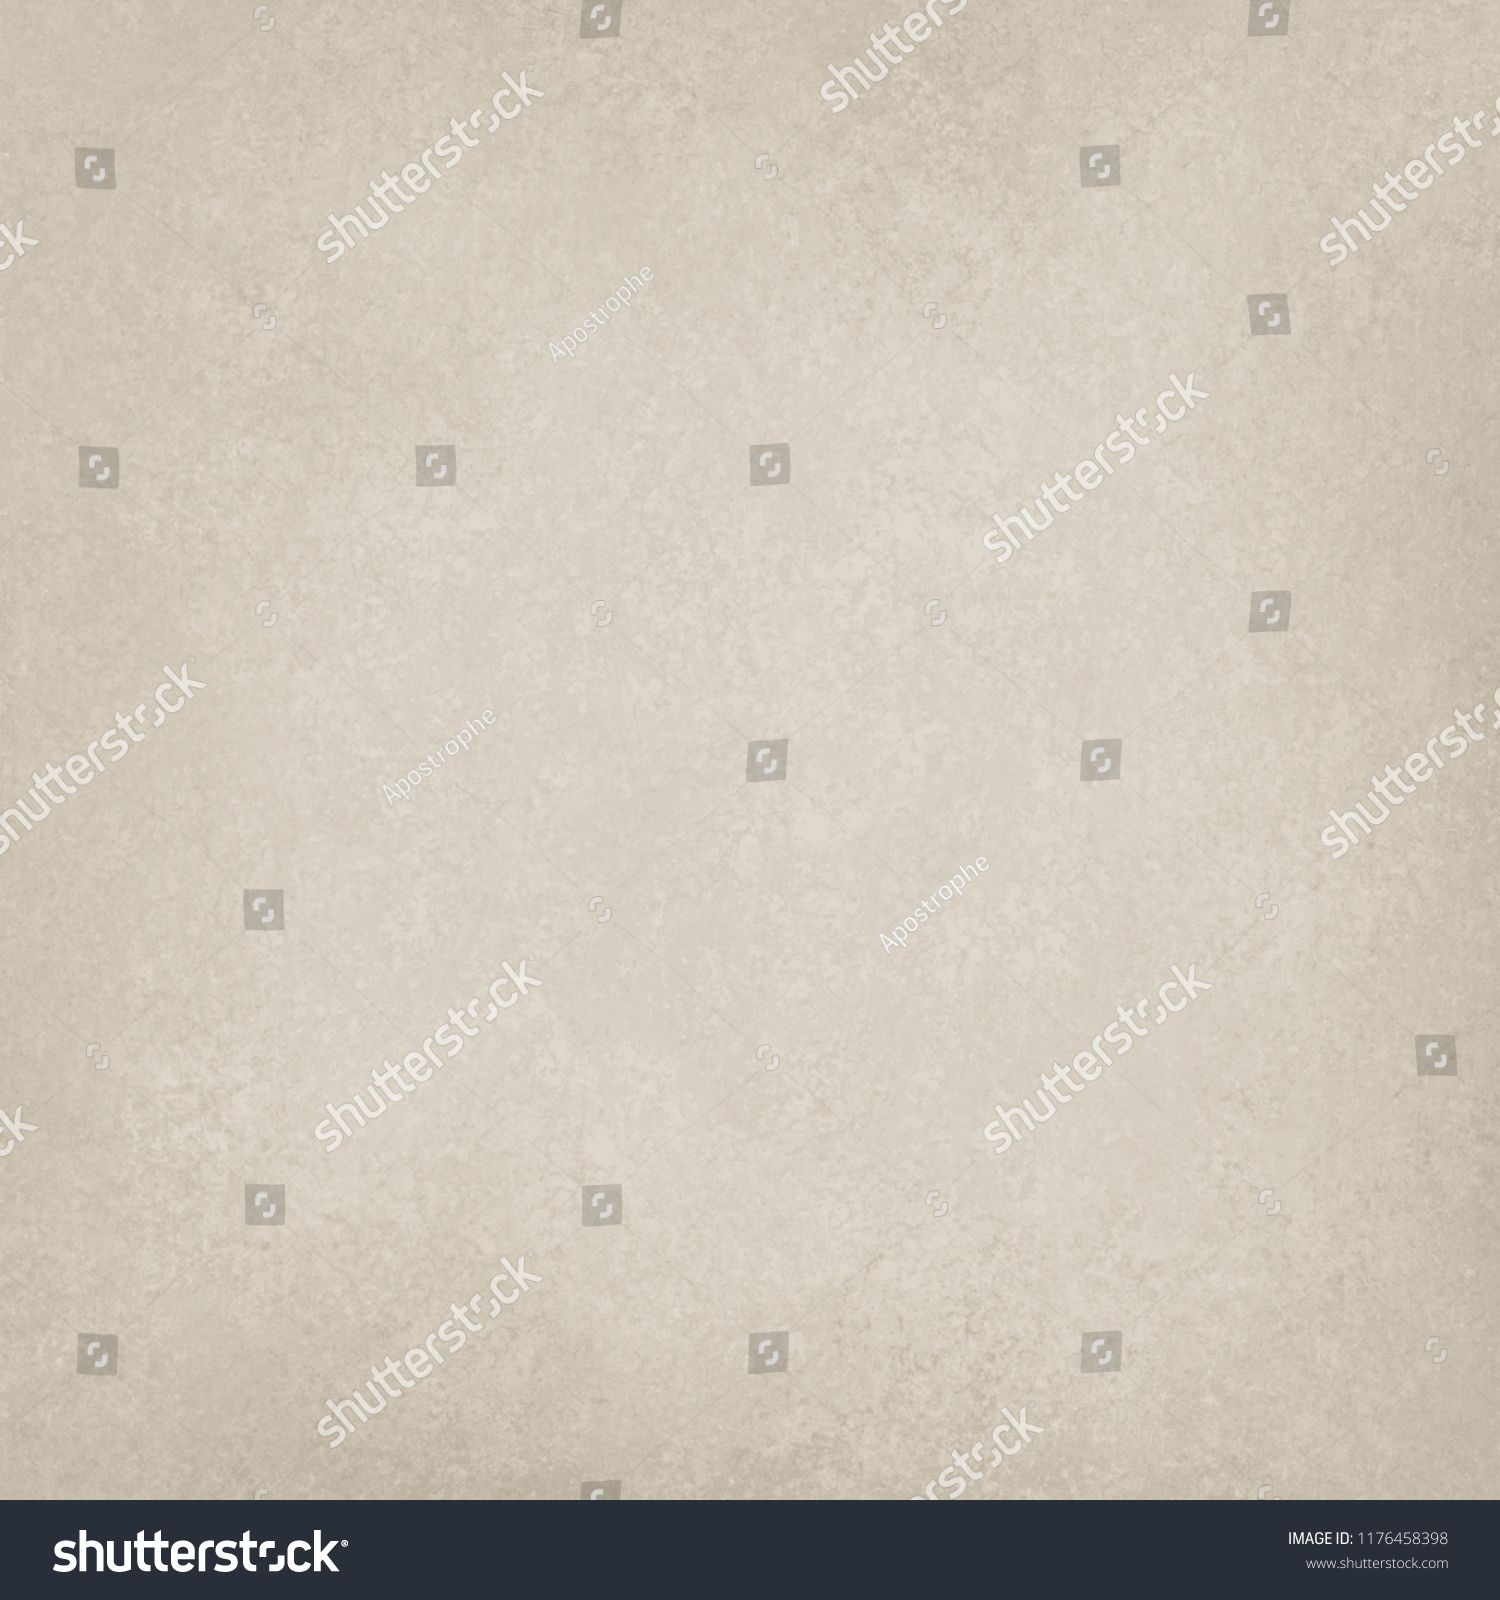 Old Vintage Brown Or Off White Paper Background Illustration With Vintage Distressed Texture And Faint Grunge Distressed Texture Paper Background White Vintage